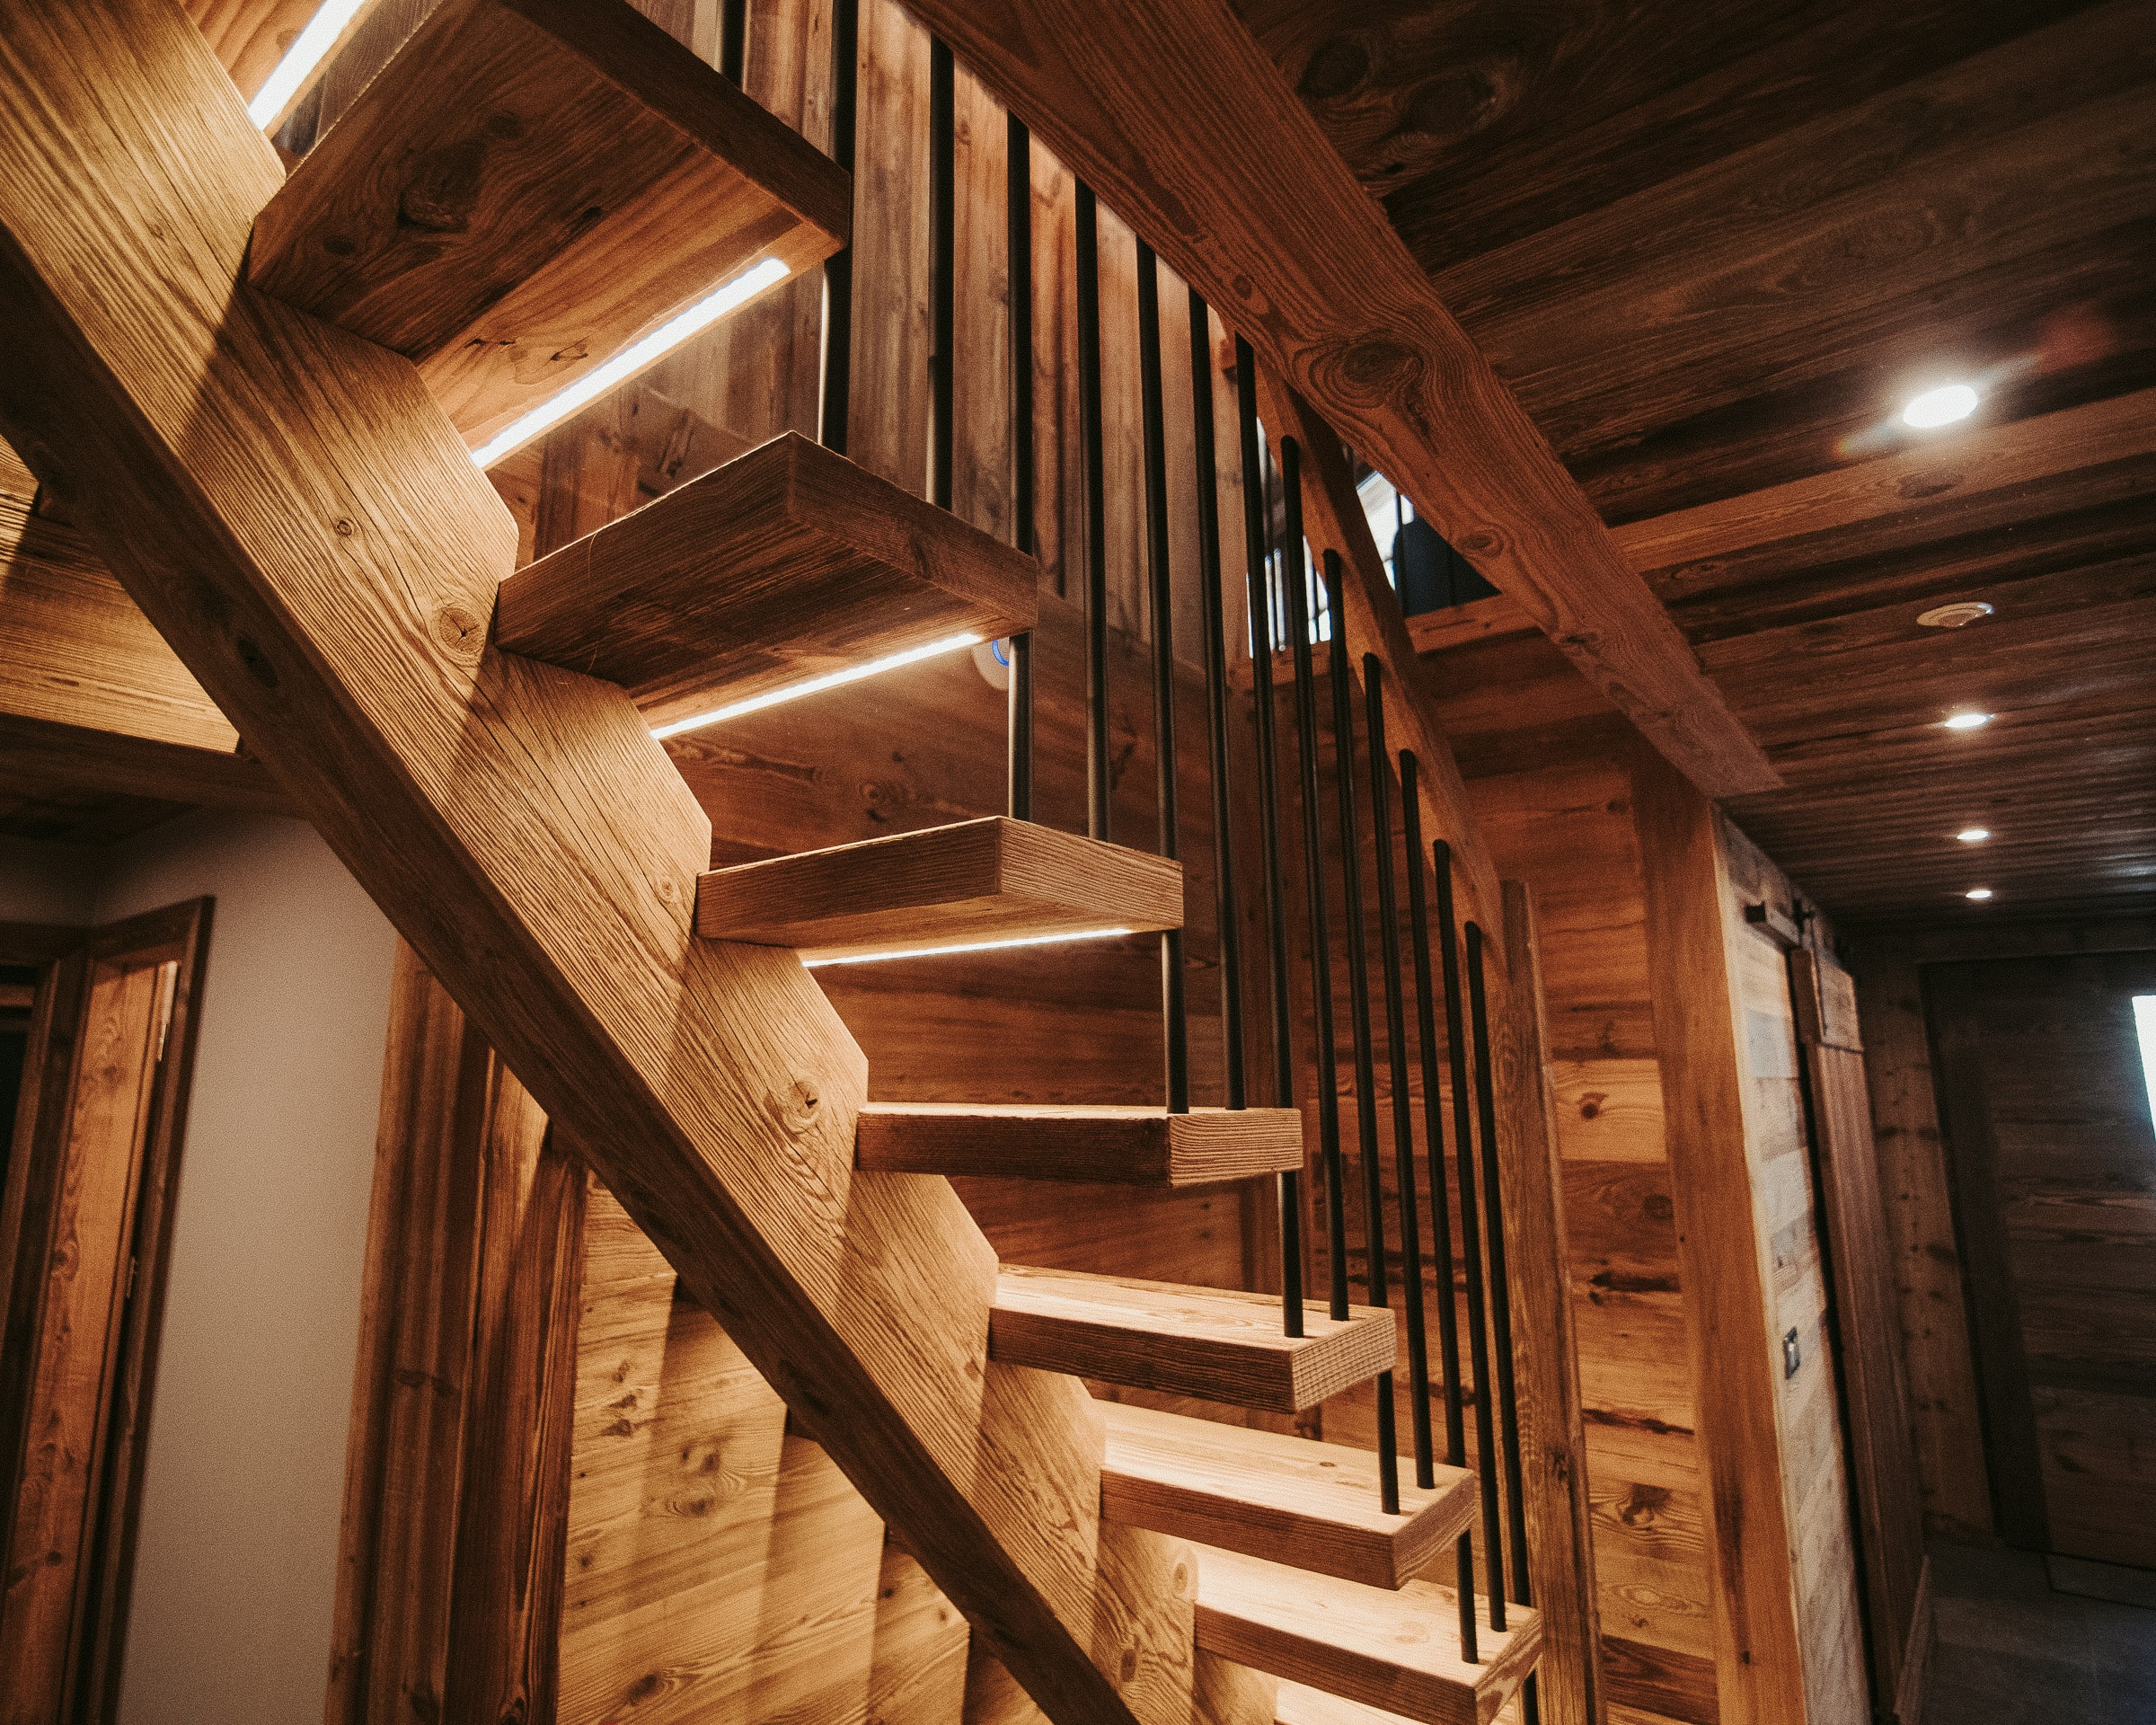 OLD WOOD STAIRS